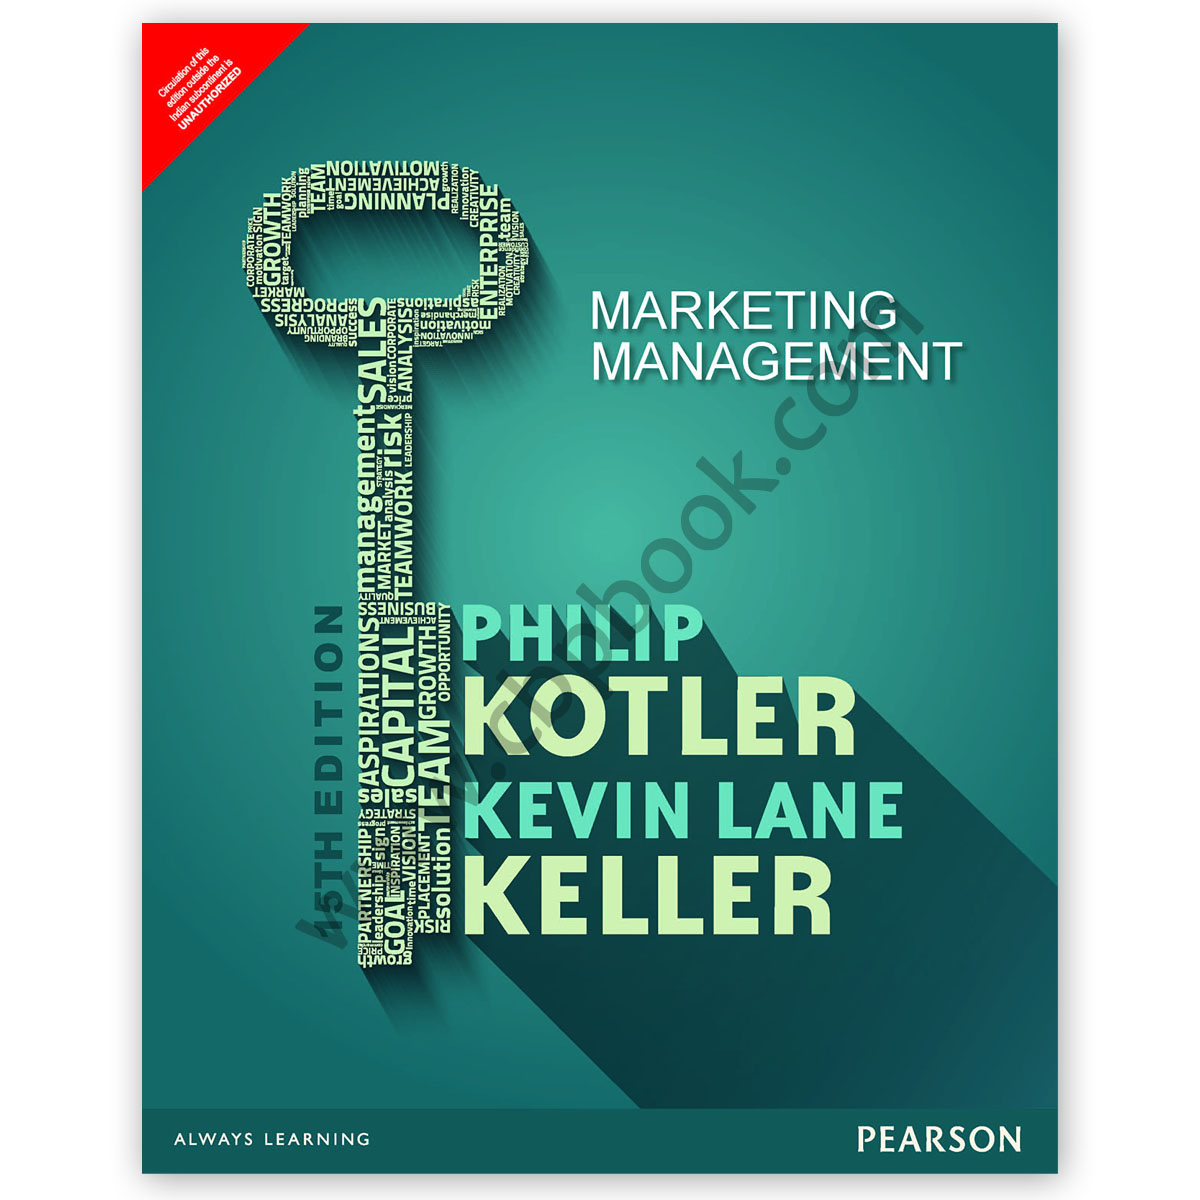 marketing management by philip kotler 15th edition - pearson